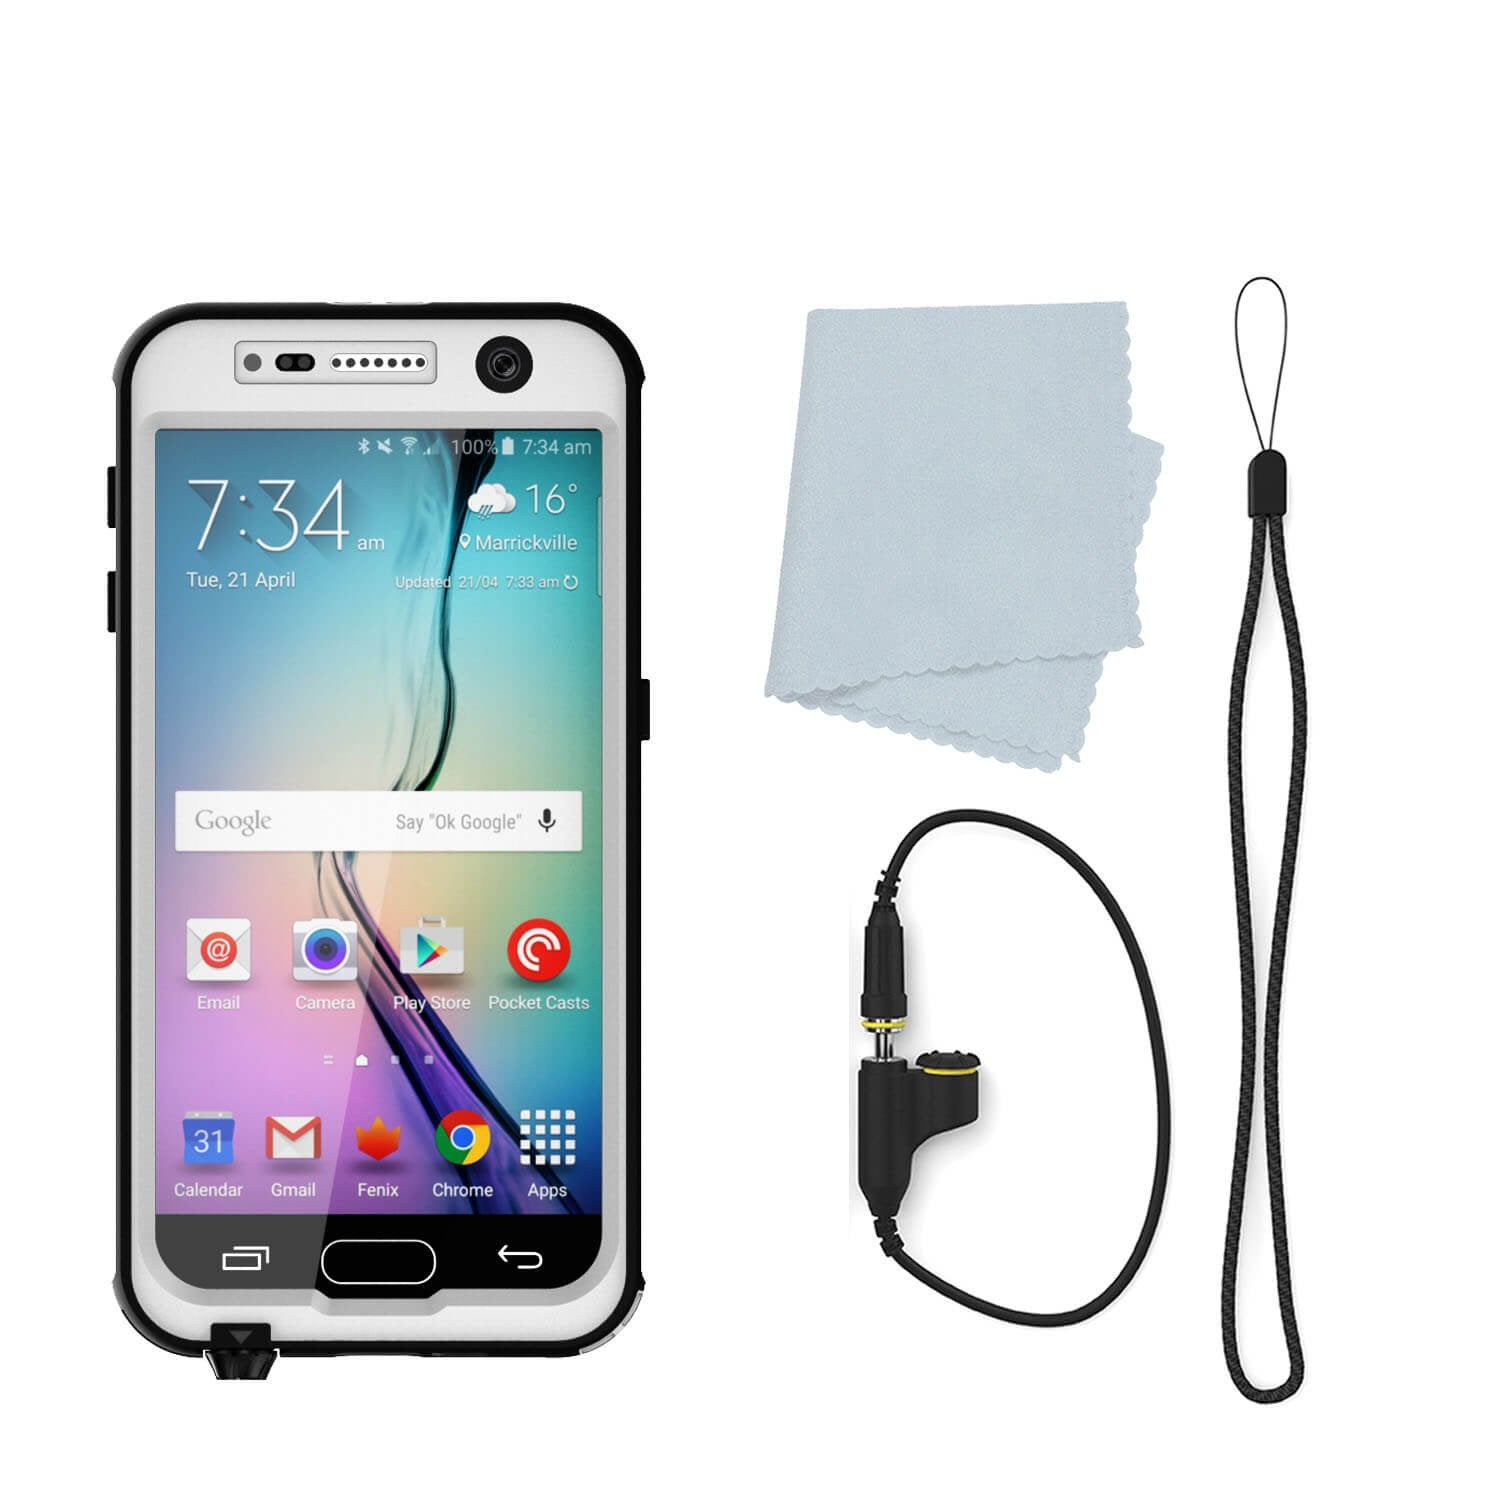 Galaxy S7 Waterproof Case, Punkcase StudStar White Thin 6.6ft Underwater IP68 Shock/Dirt/Snow Proof